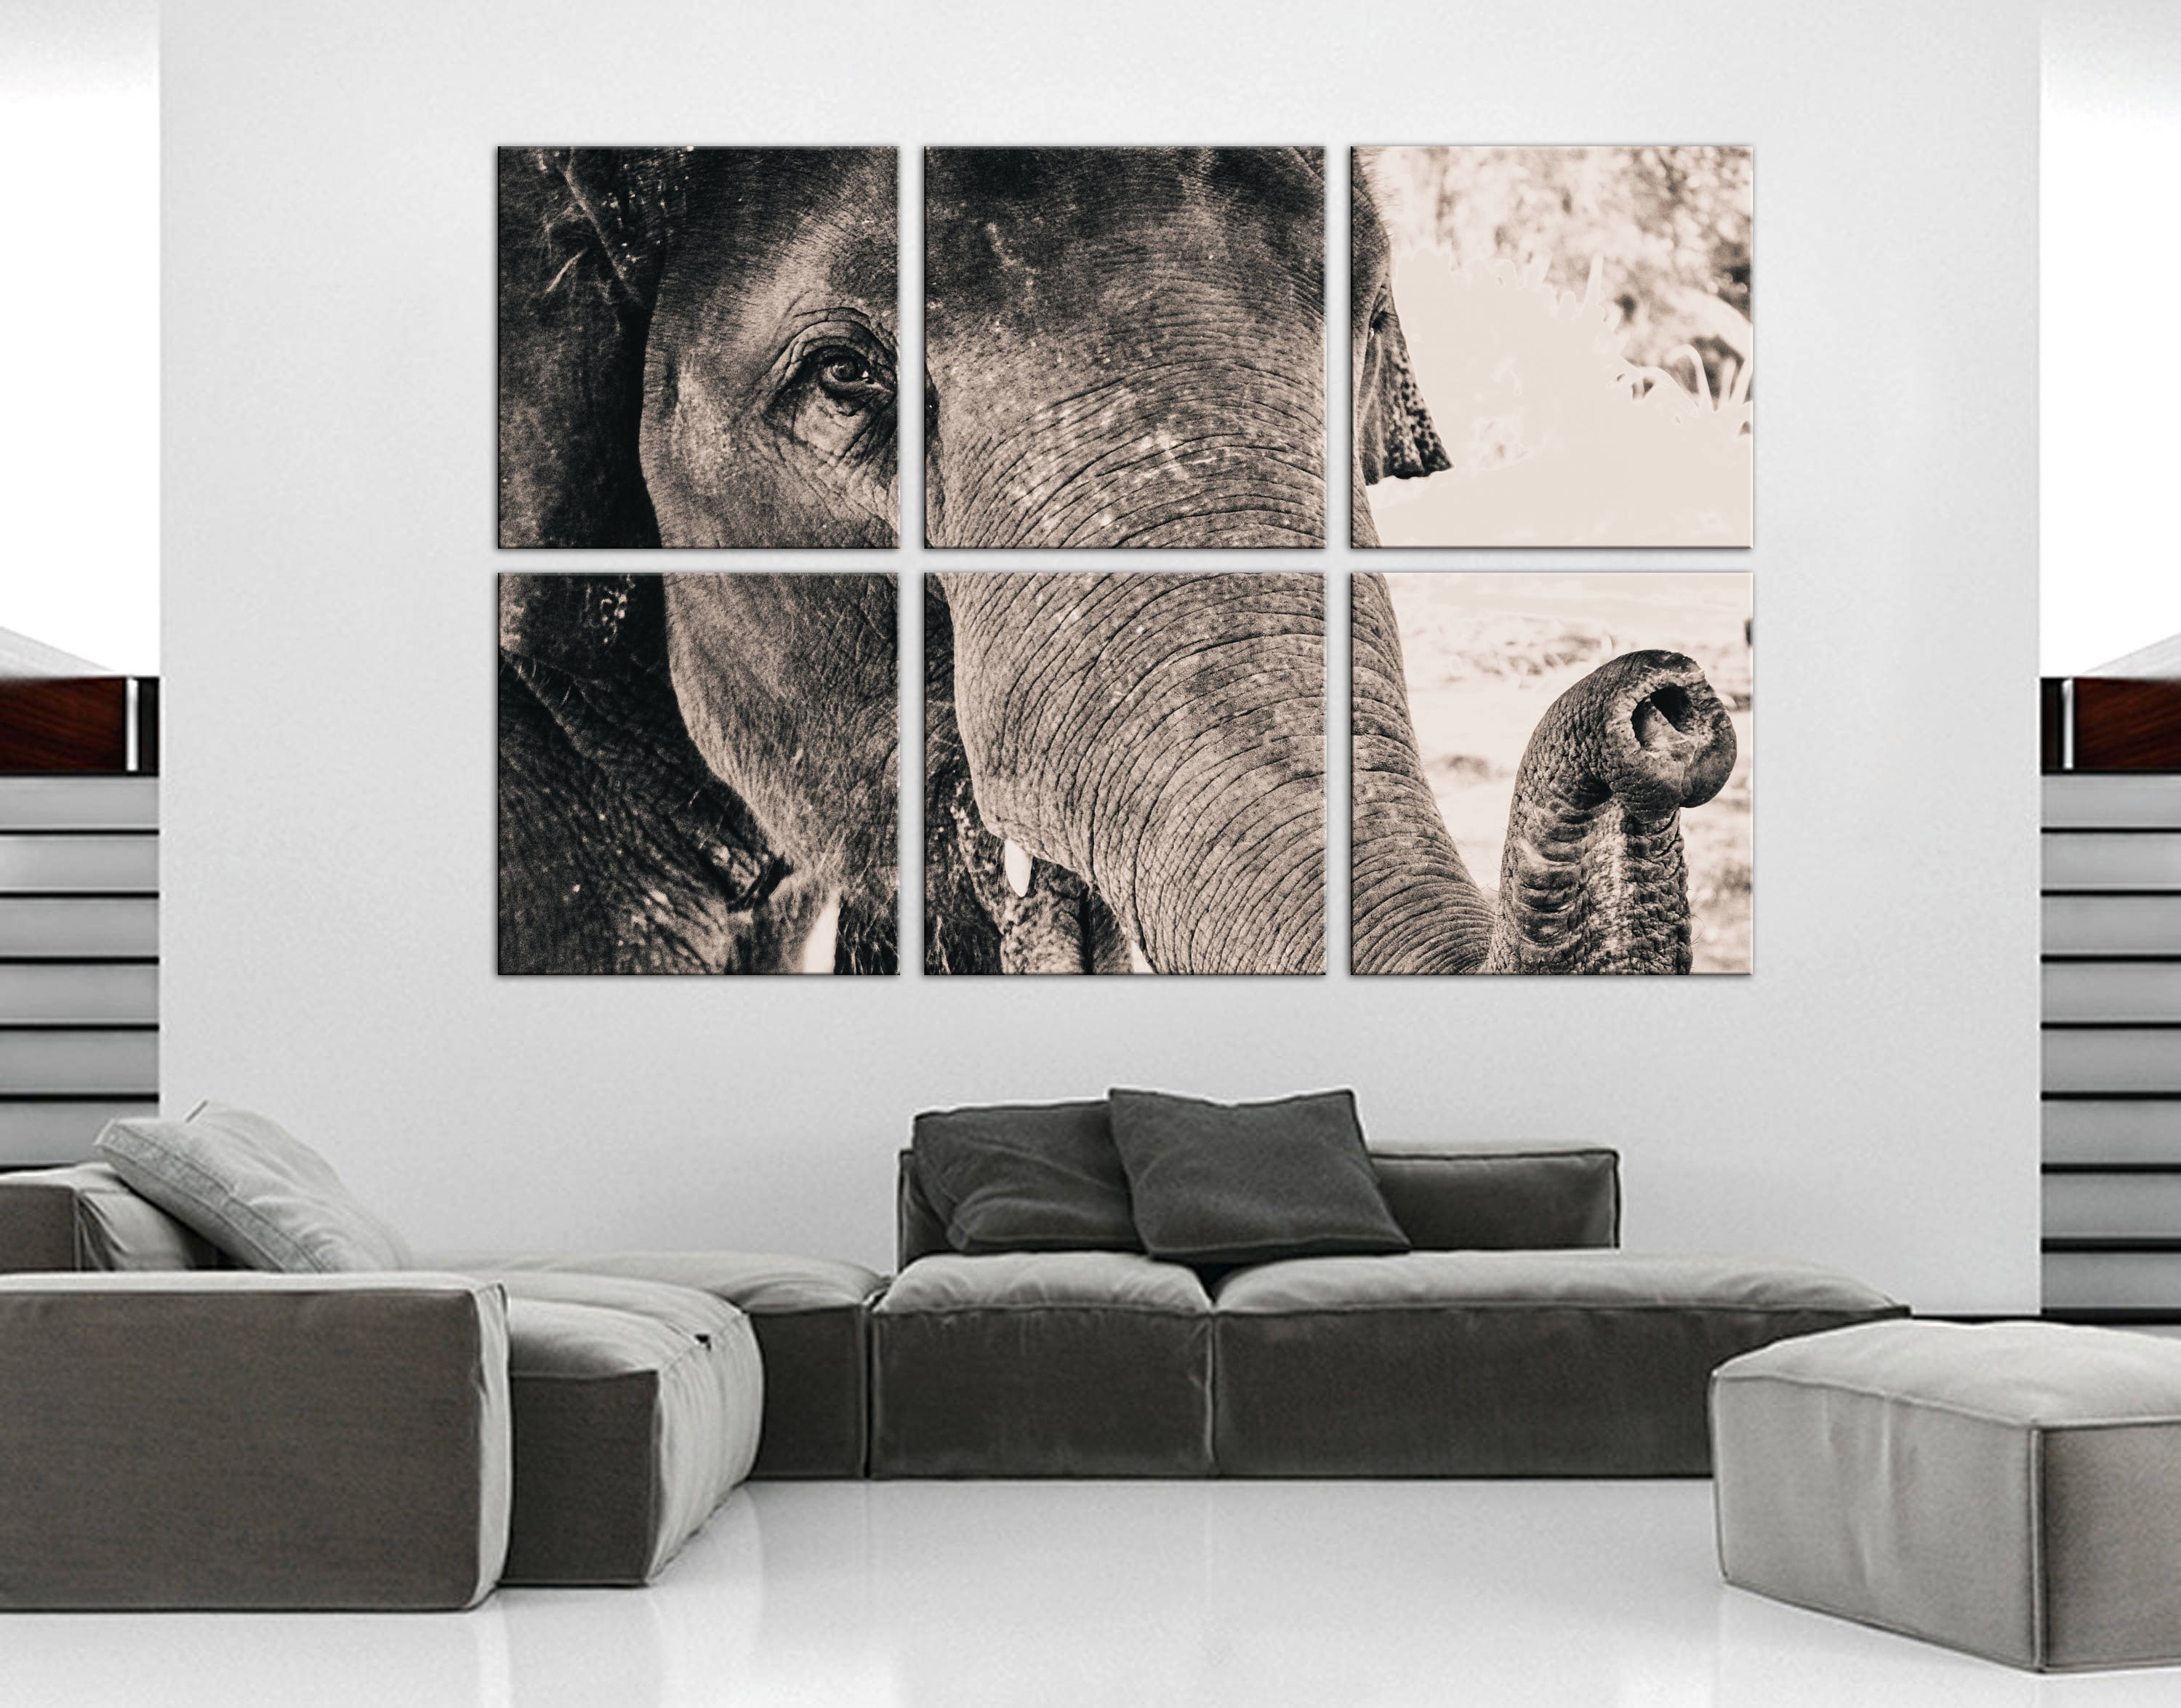 Elephant Wall Decor Canvas Elephant Wall Art Canvas Art Home Decor With Regard To Newest Queensland Canvas Wall Art (Gallery 3 of 15)